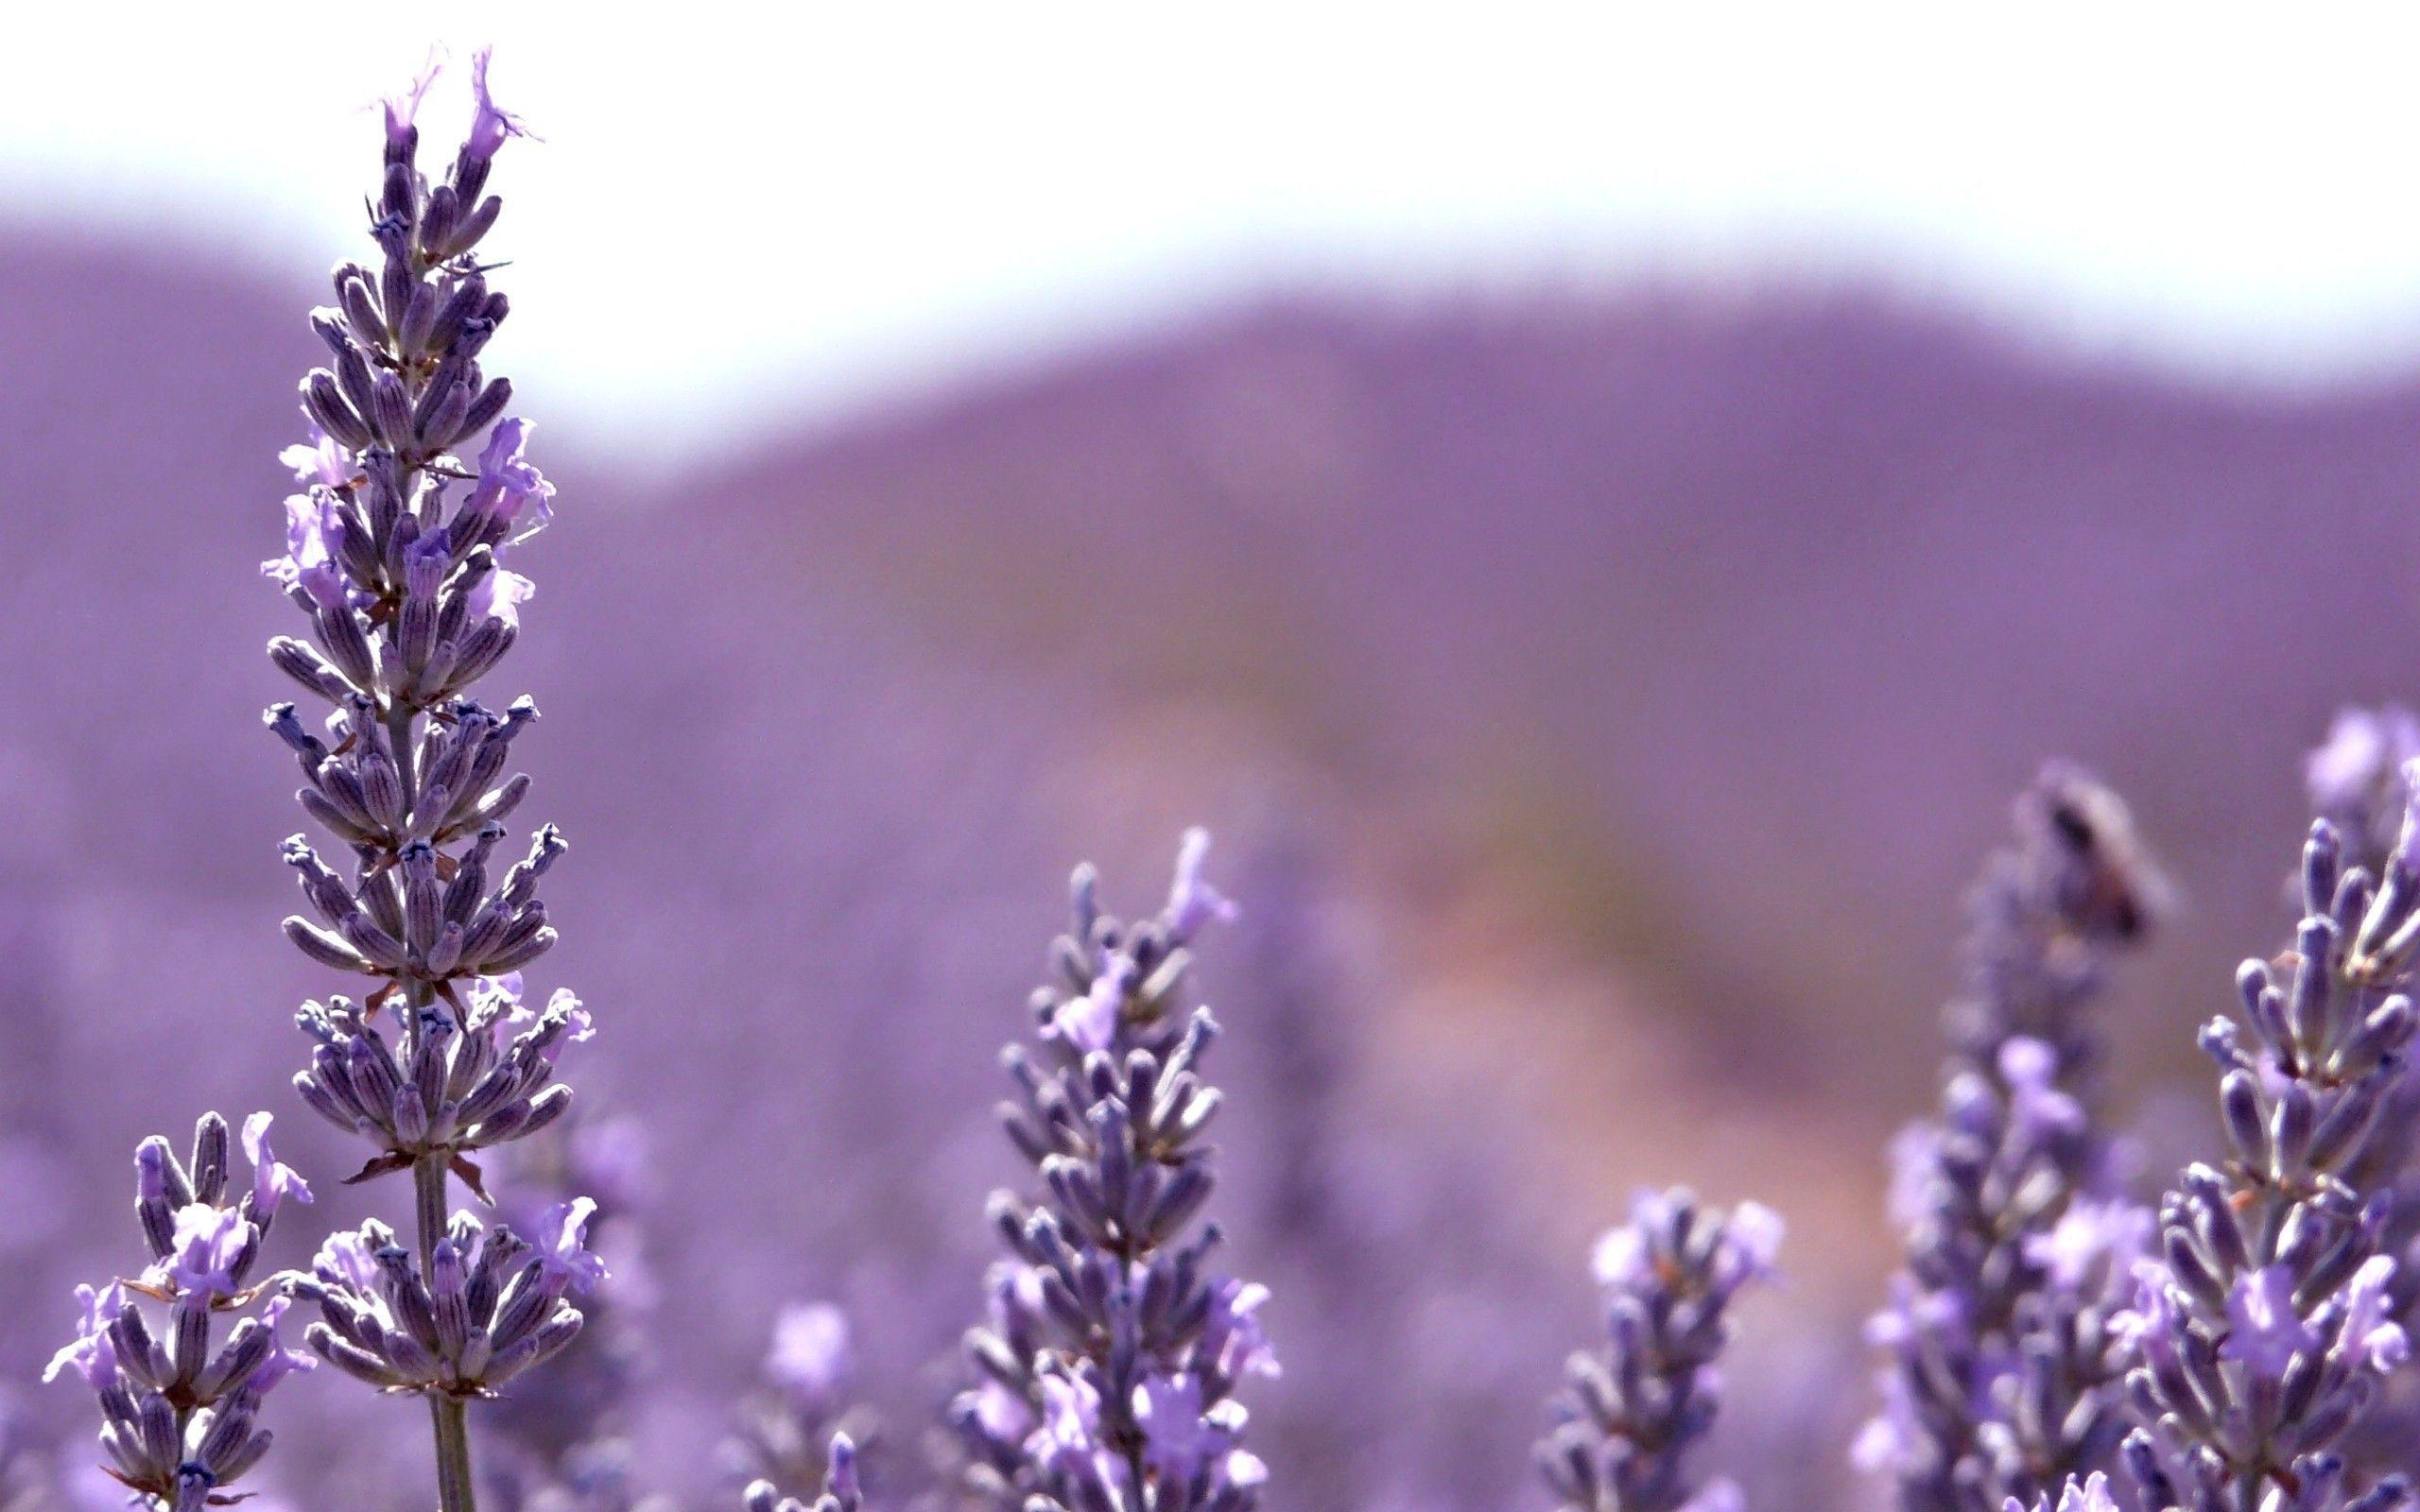 Lavender Flower Wallpapers 2560x1600